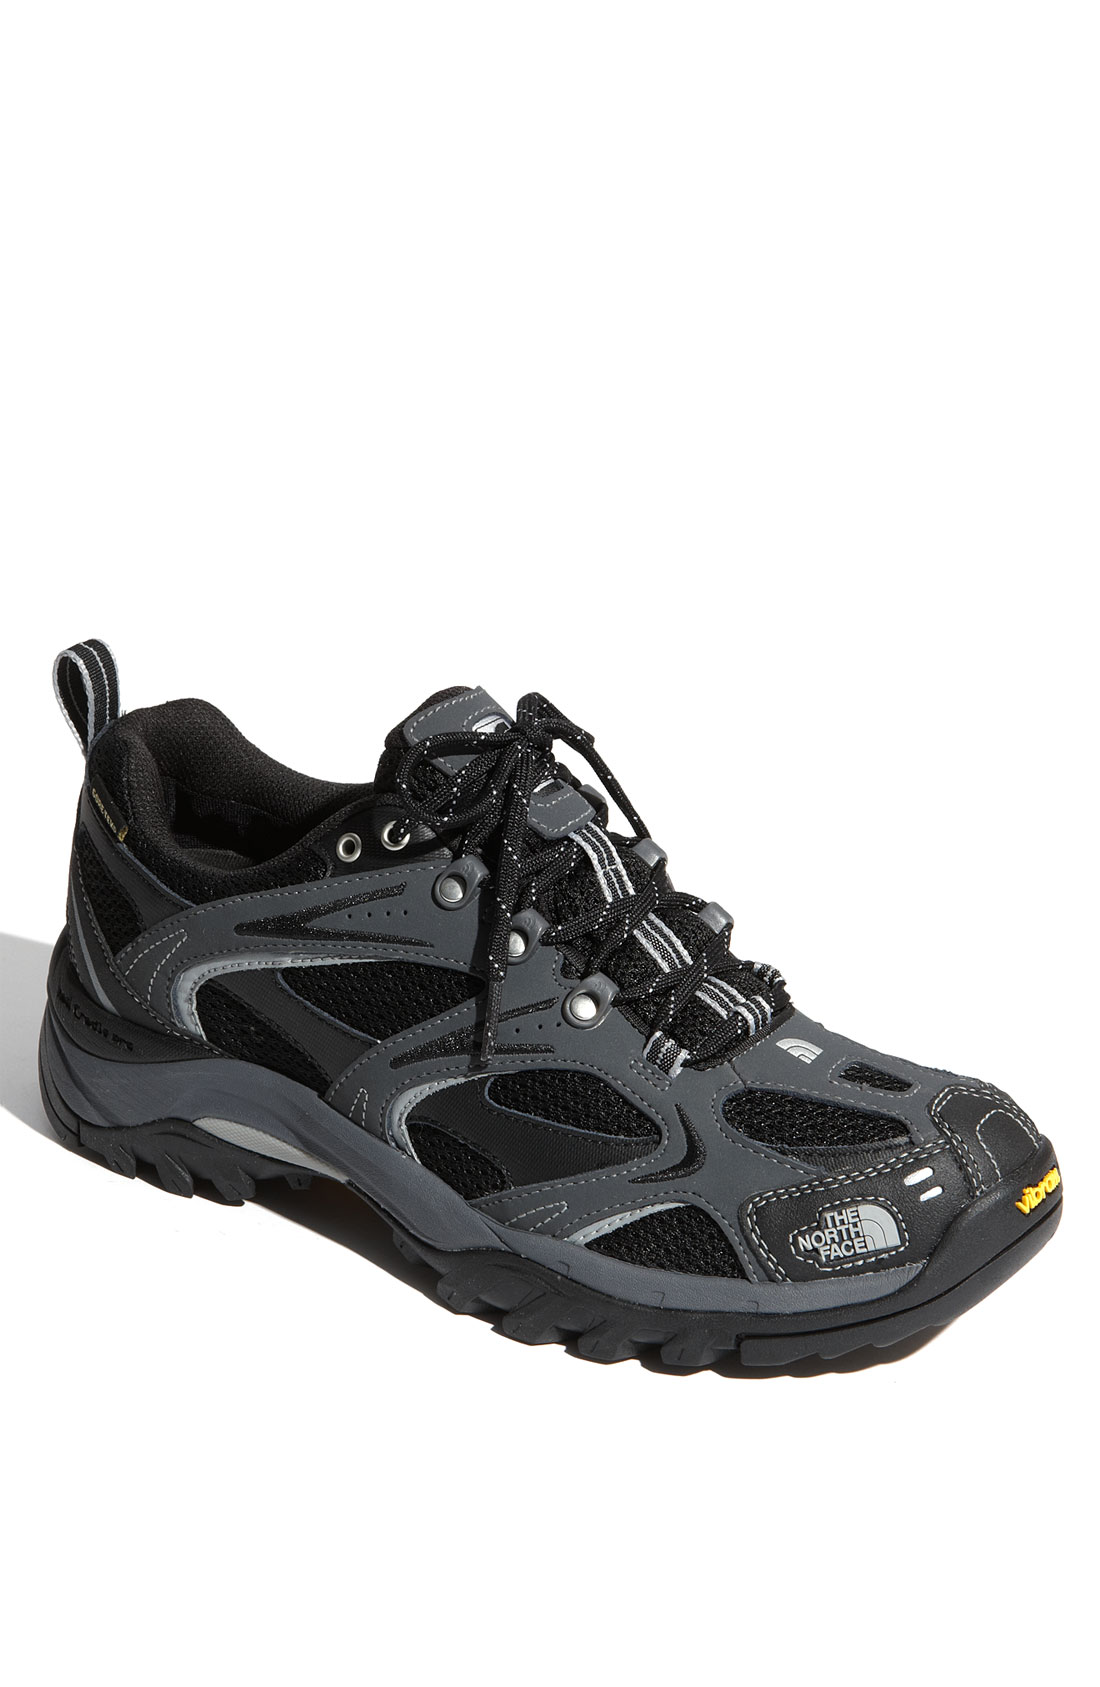 The North Face Hedgehog Iii Hiking Shoes Mens